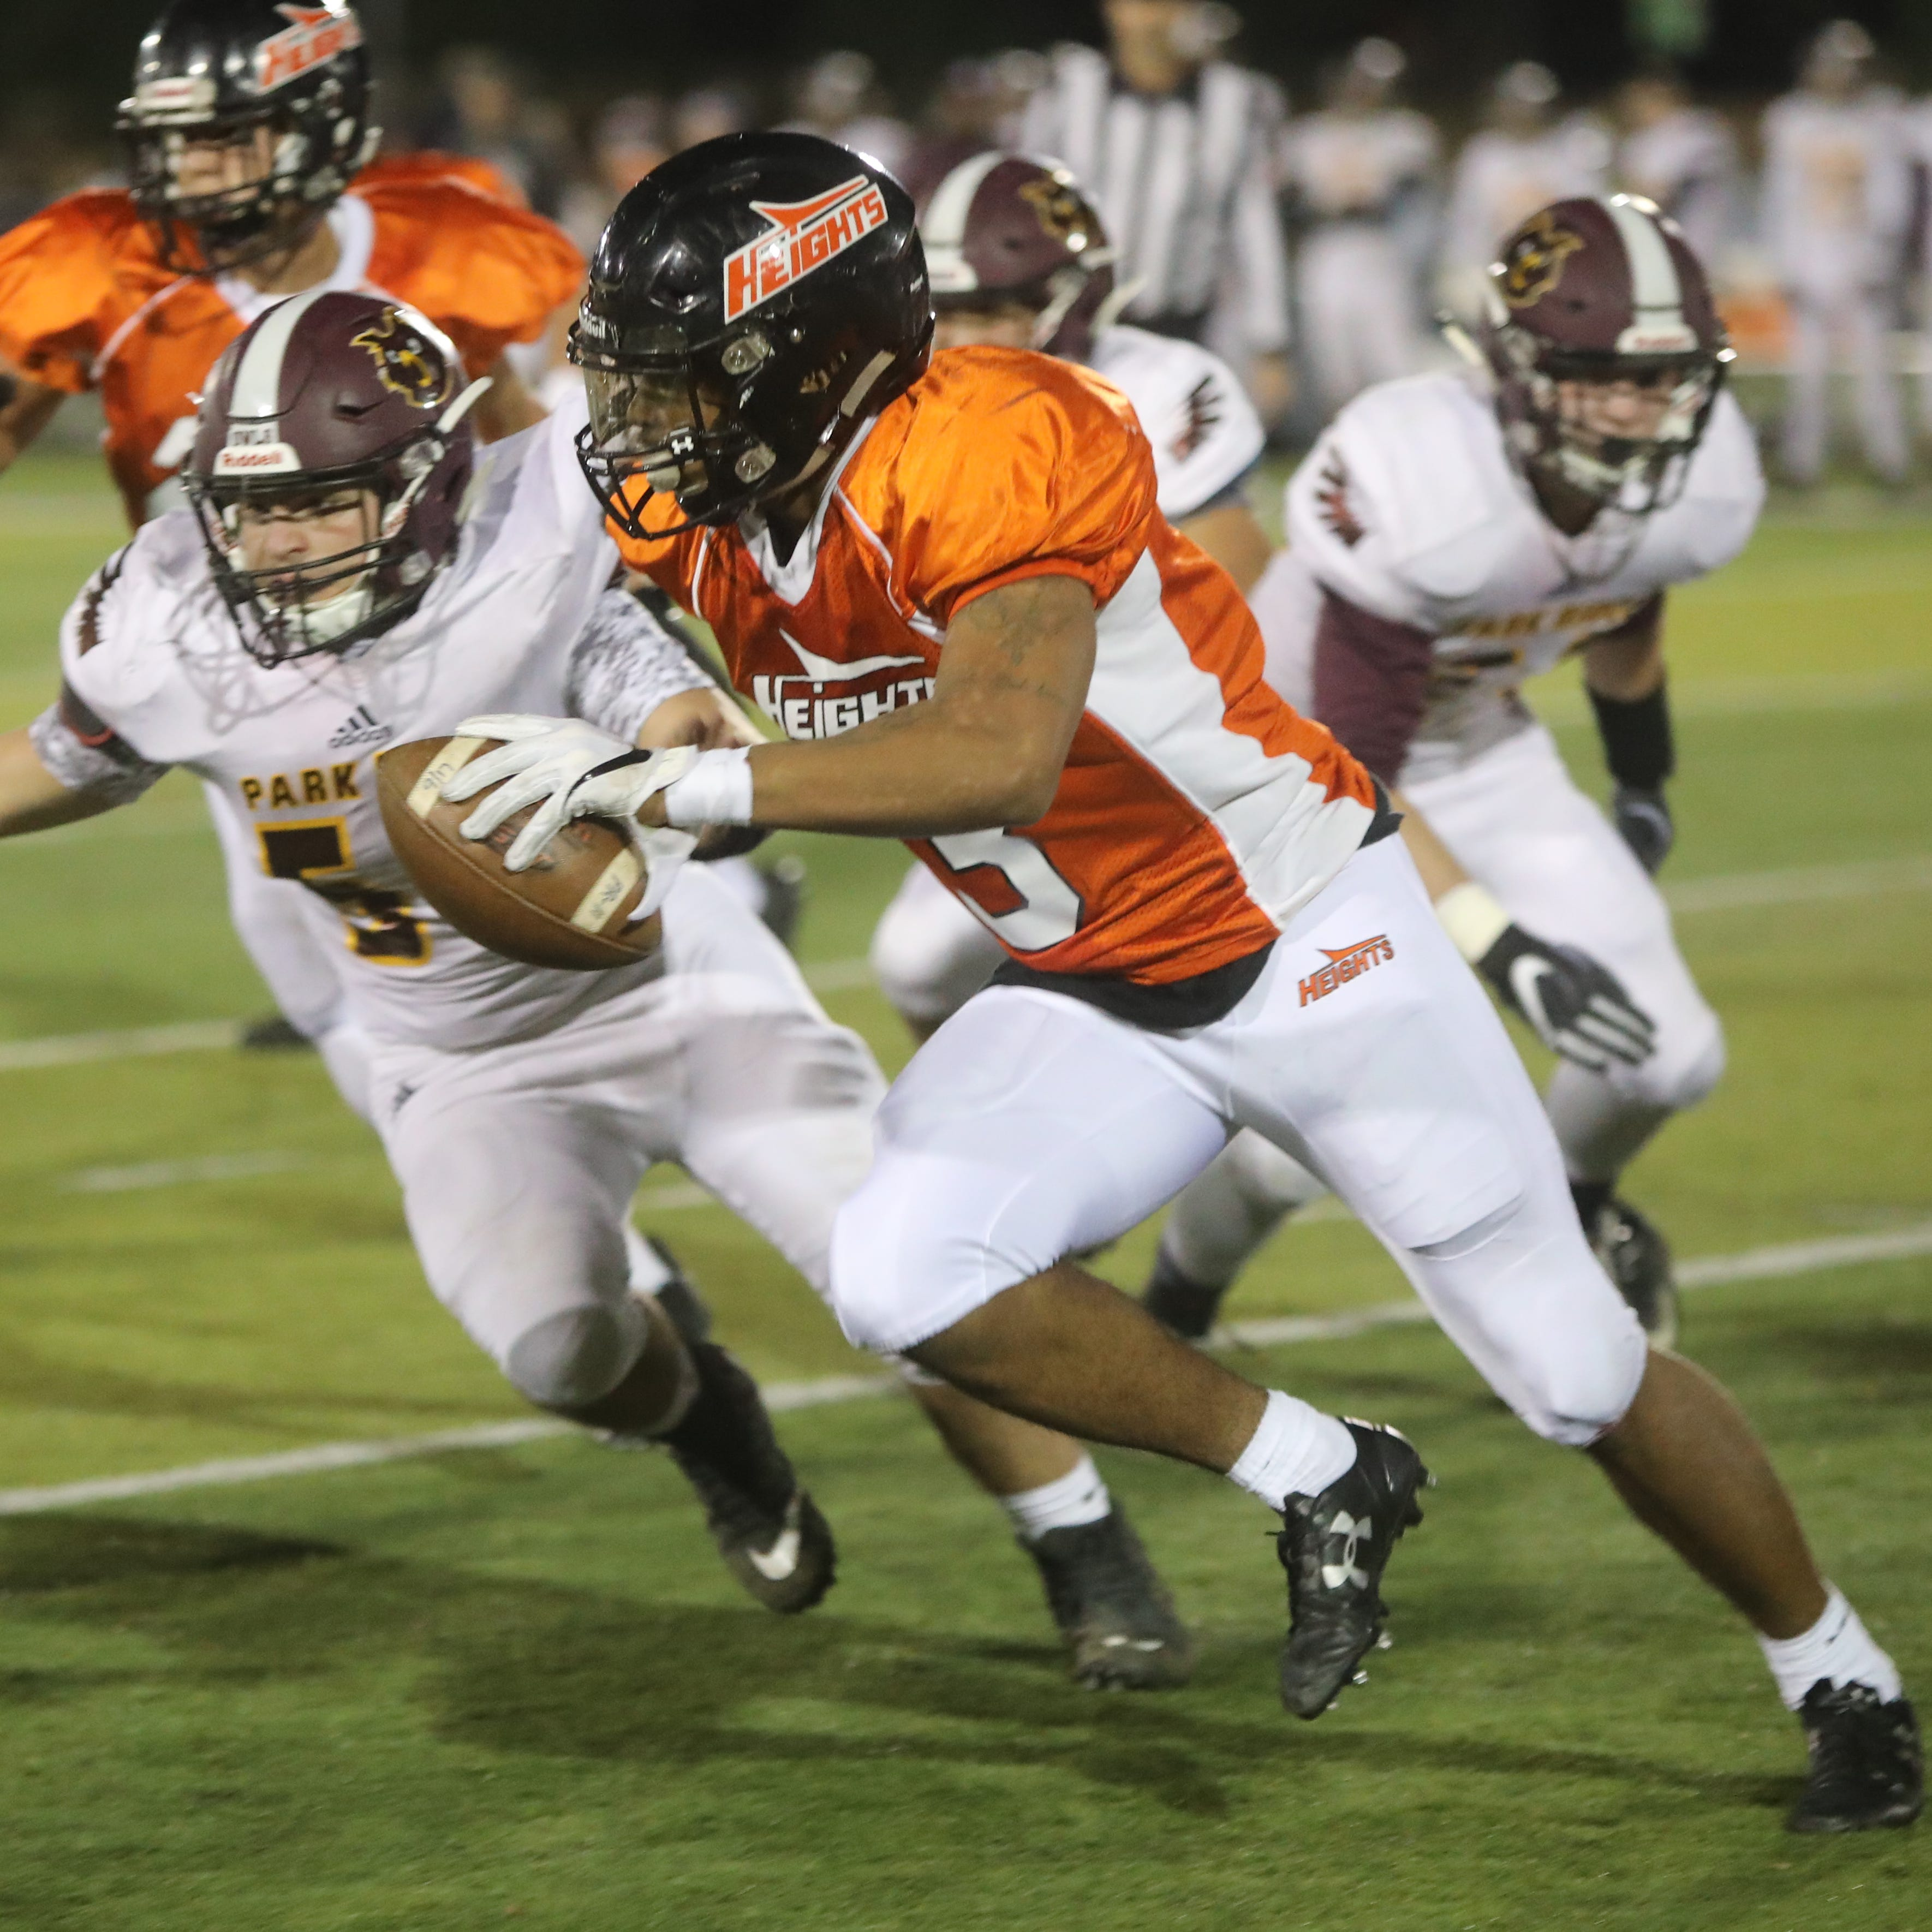 Hasbrouck Heights football earns third NJIC final bid with win over Park Ridge